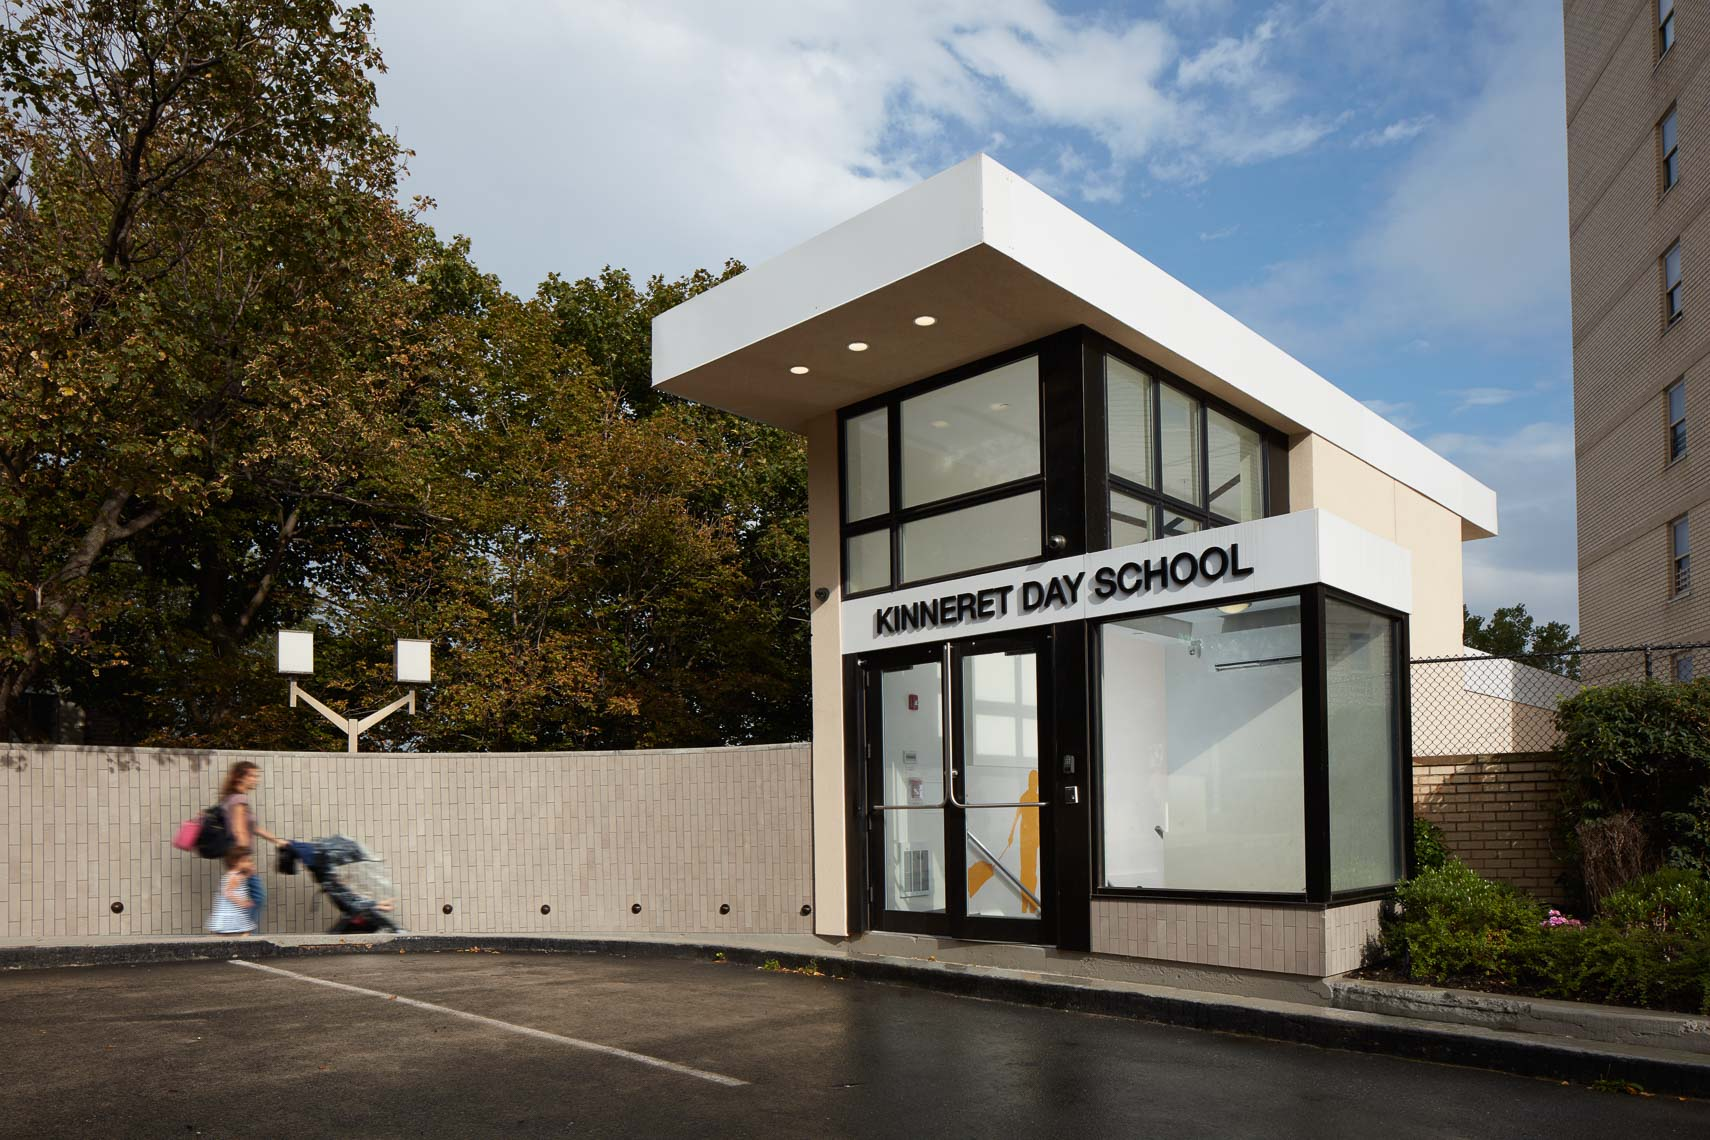 Exterior facade of school with a glass enclosed front entrance